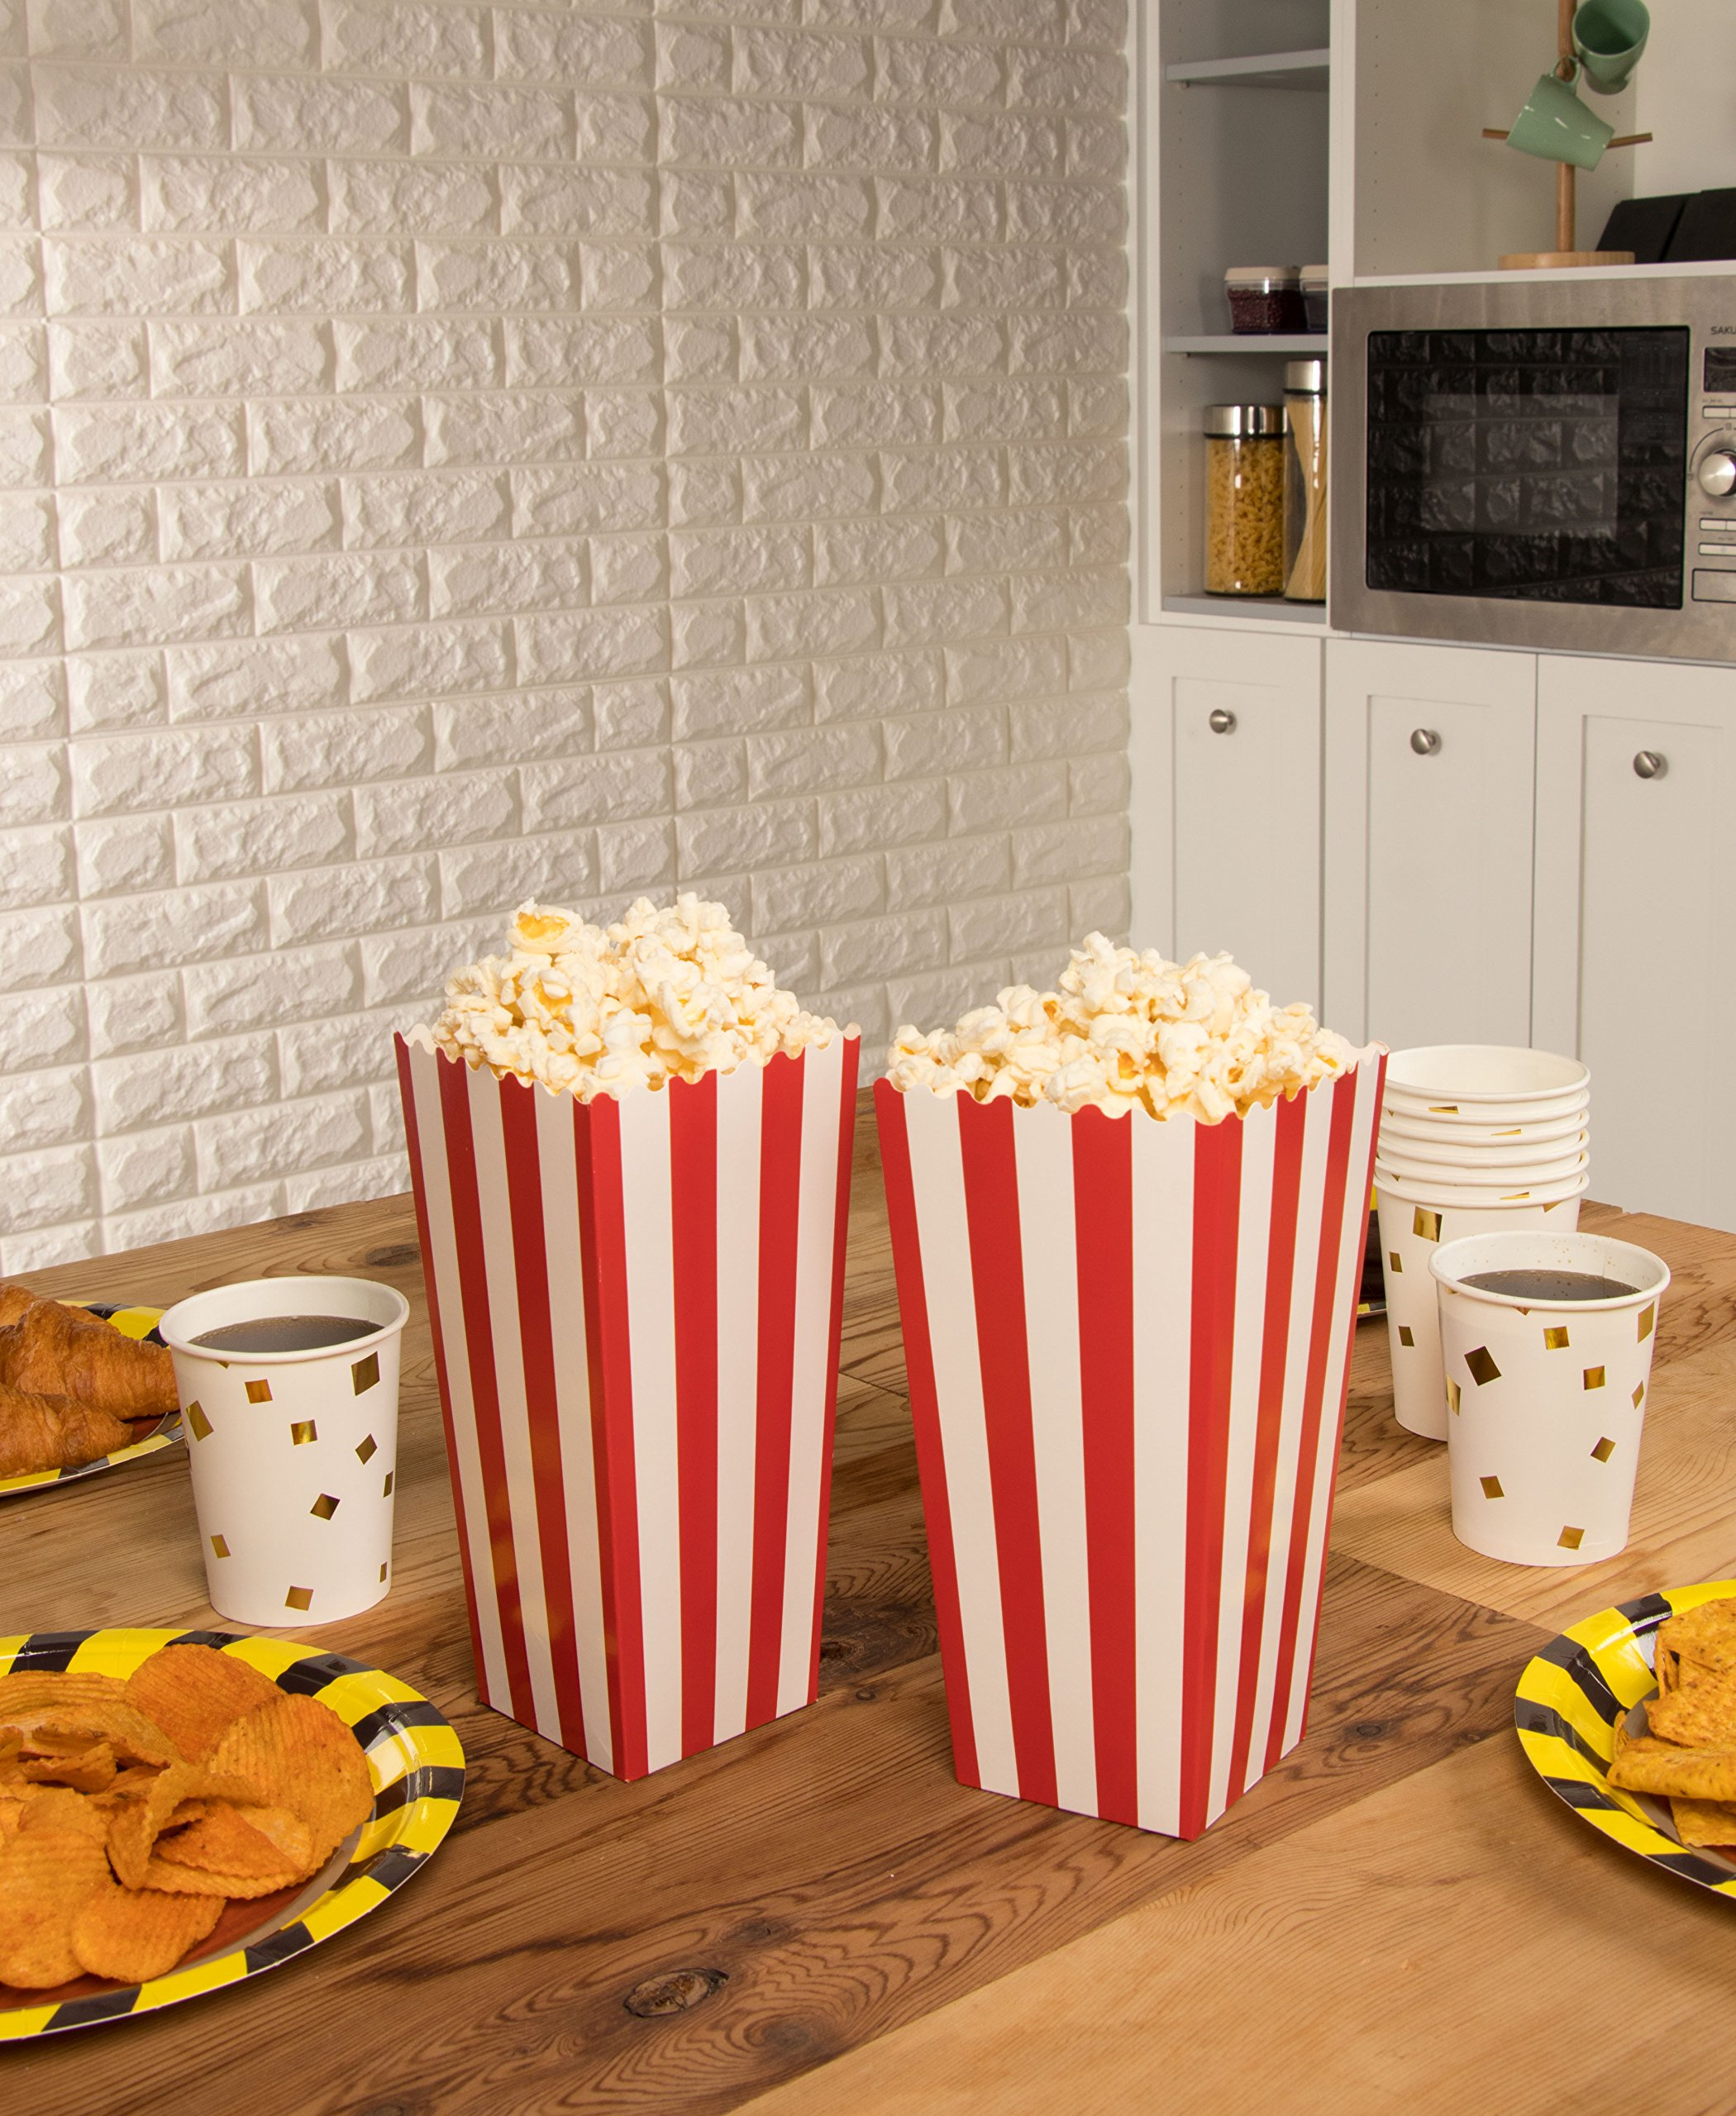 Set of 100 Popcorn Favor Boxes - Paper Popcorn Containers, Popcorn Party Supplies for Movie Nights, Movie-Themed Parties, Carnival Parties, Pirate Party, Red and White - 3.7 x 7.8 x 3.7 Inches by Blue Panda (Image #9)